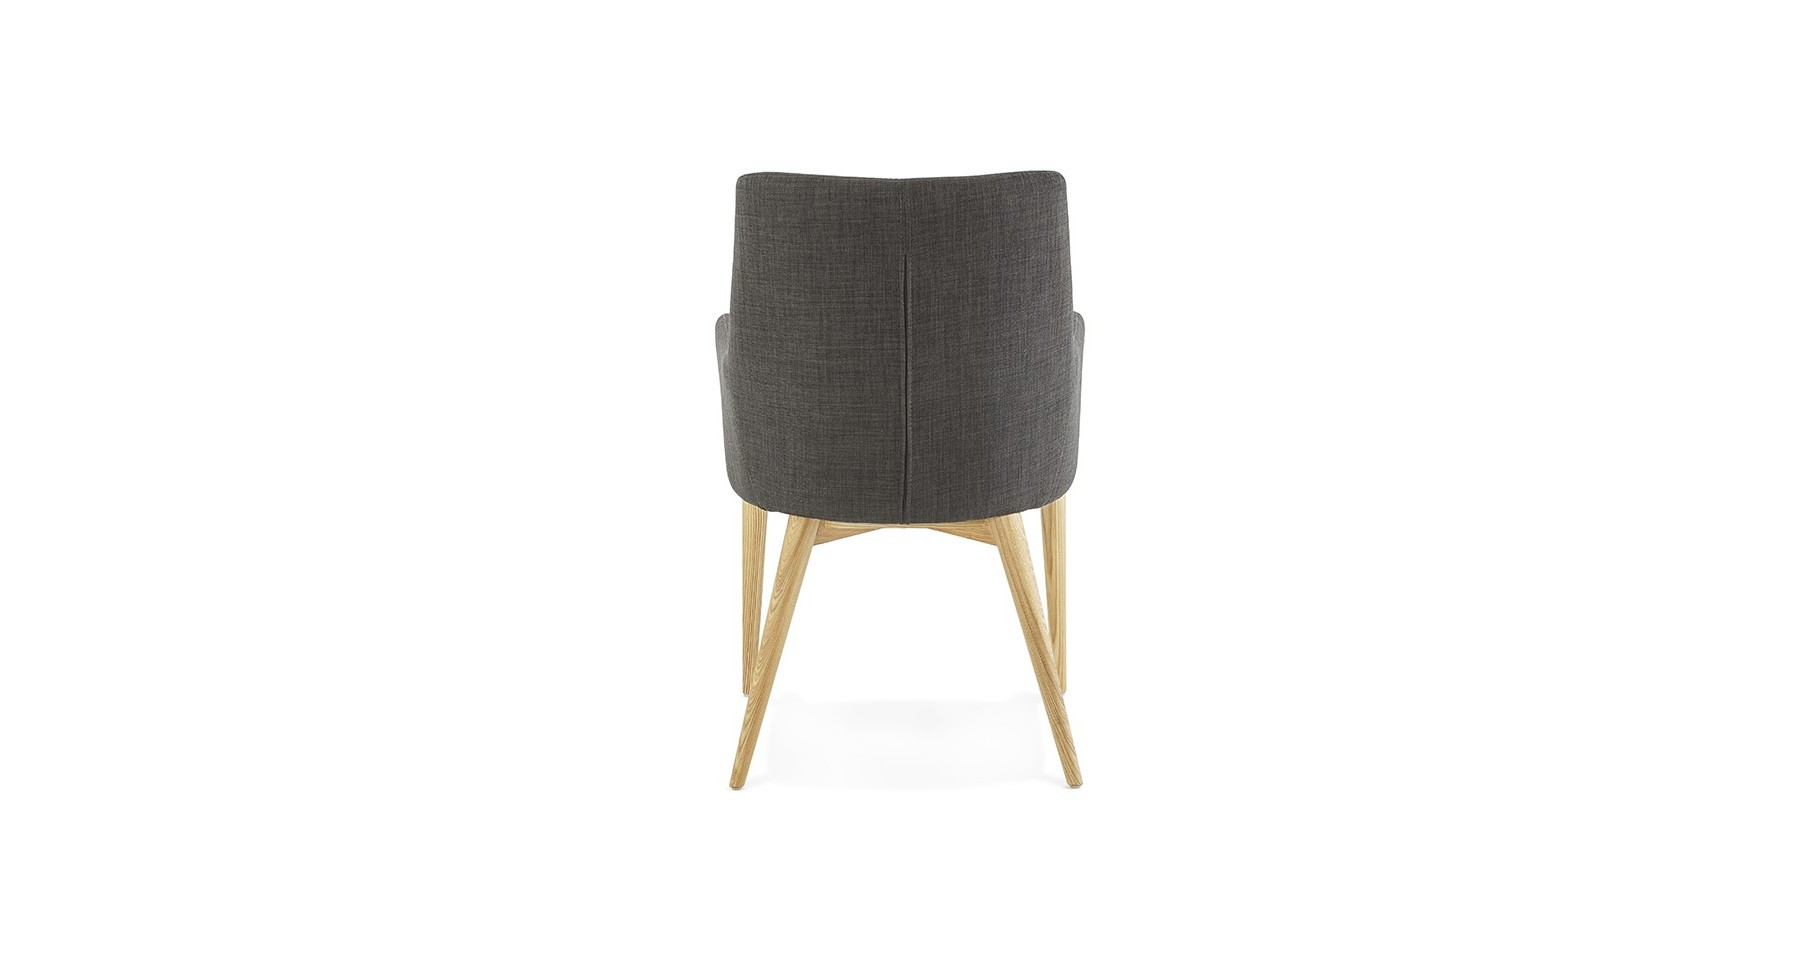 Chaise Scandinave Grise Geode